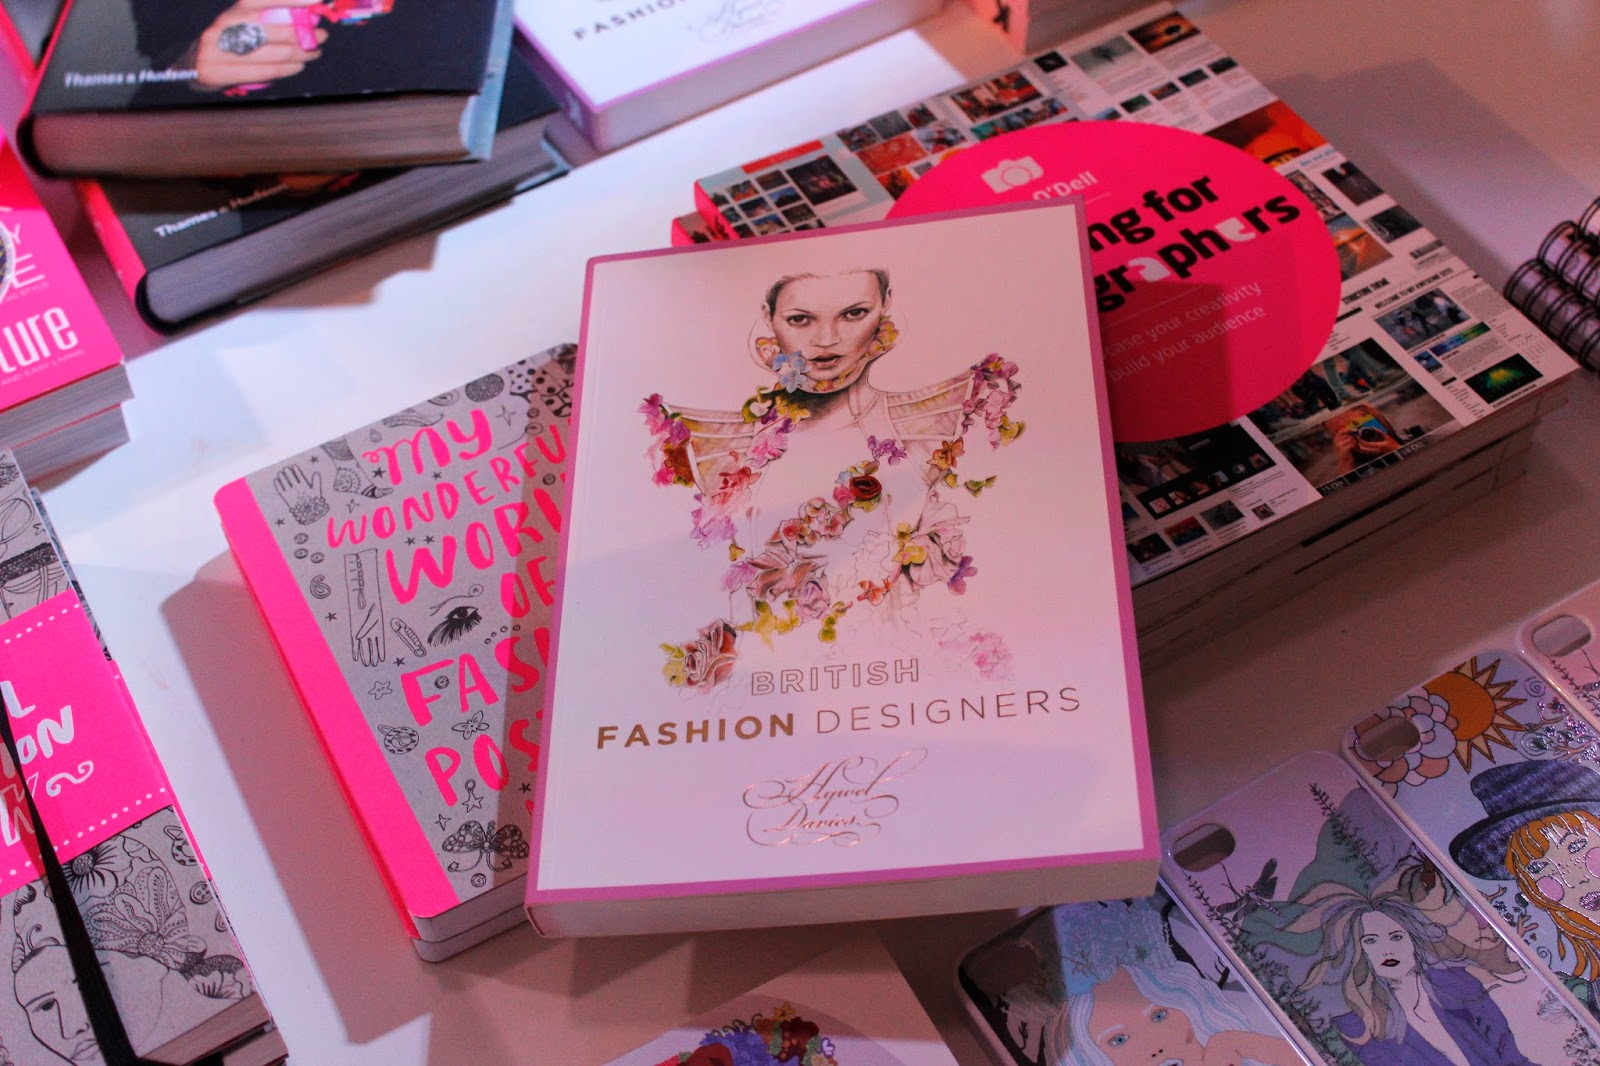 British Fashion Designers book